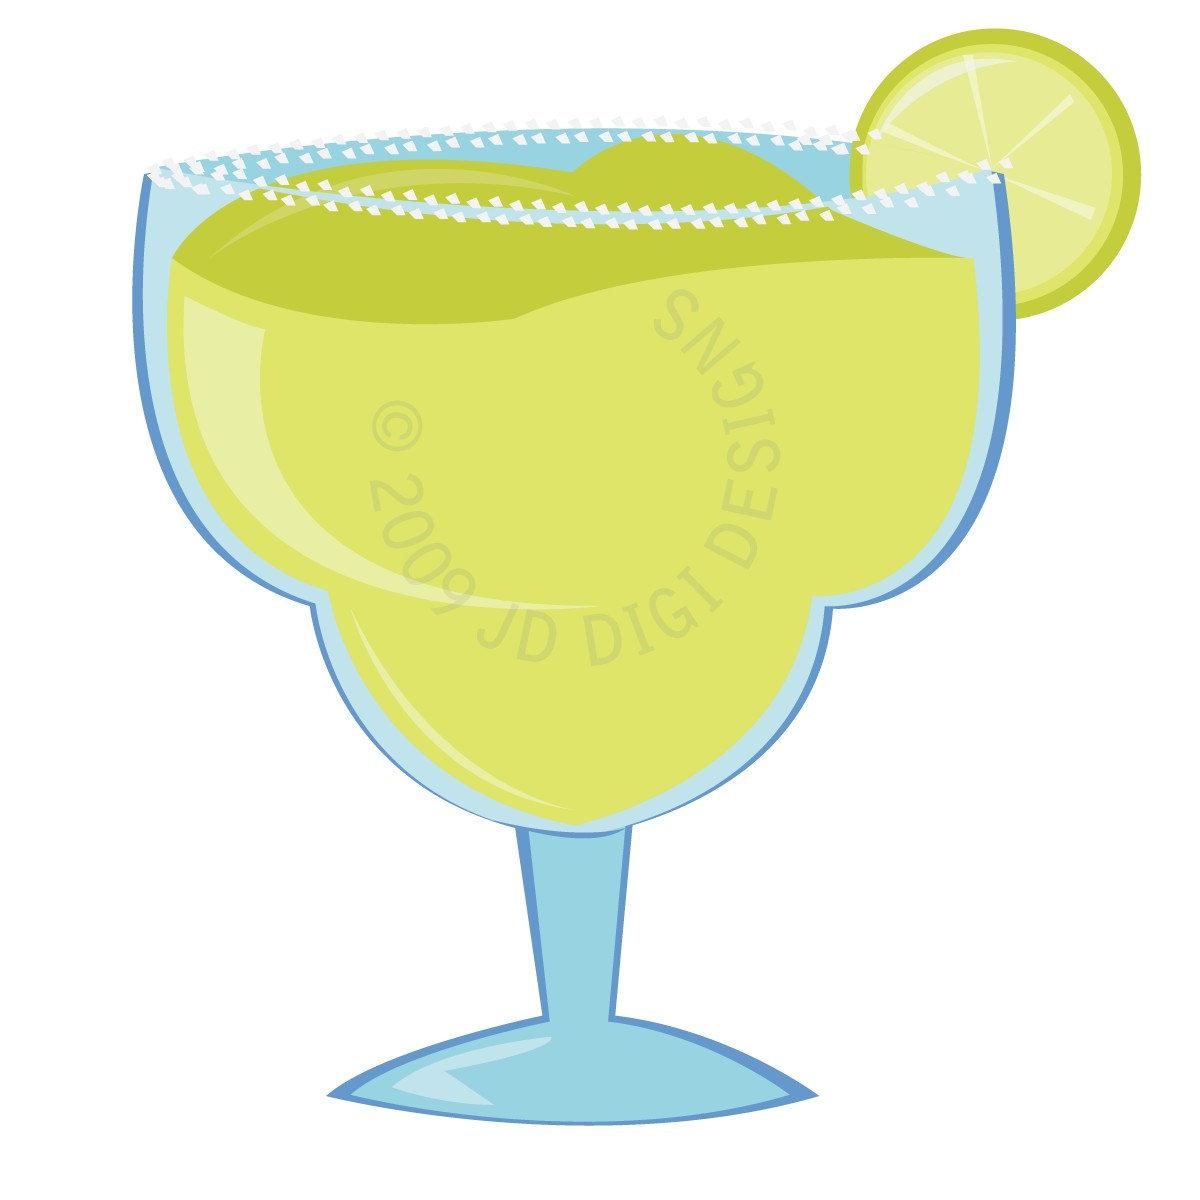 margarita 20clipart clipart panda free clipart images clip art wine glasses toasting clipart wine glass and steak